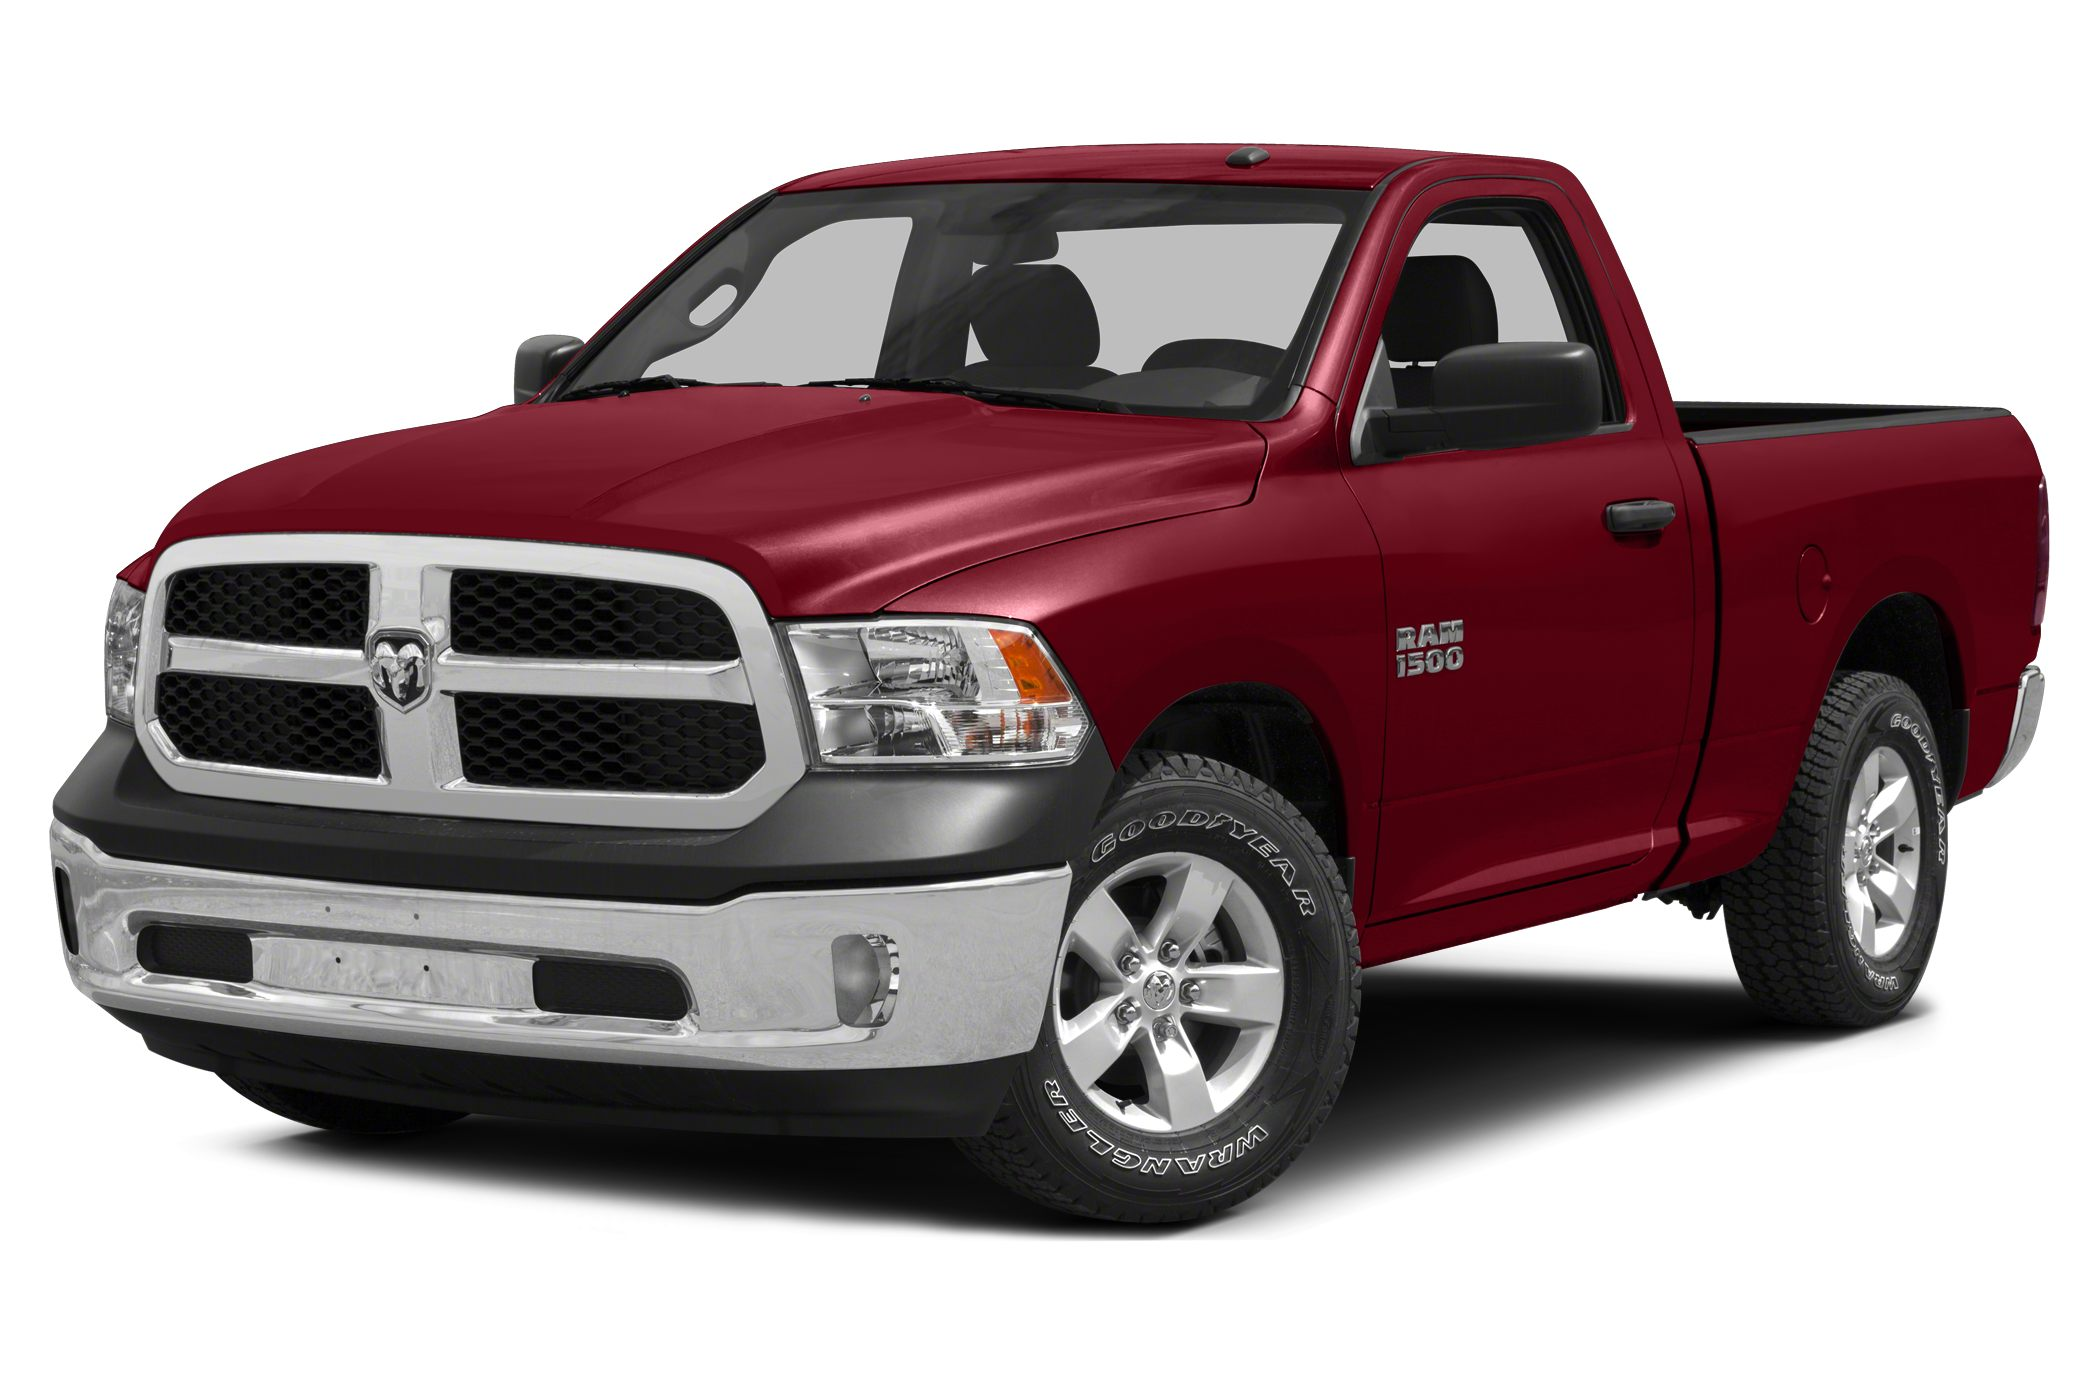 2013 RAM 1500 SLT Crew Cab Pickup for sale in Jefferson City for $28,547 with 30,655 miles